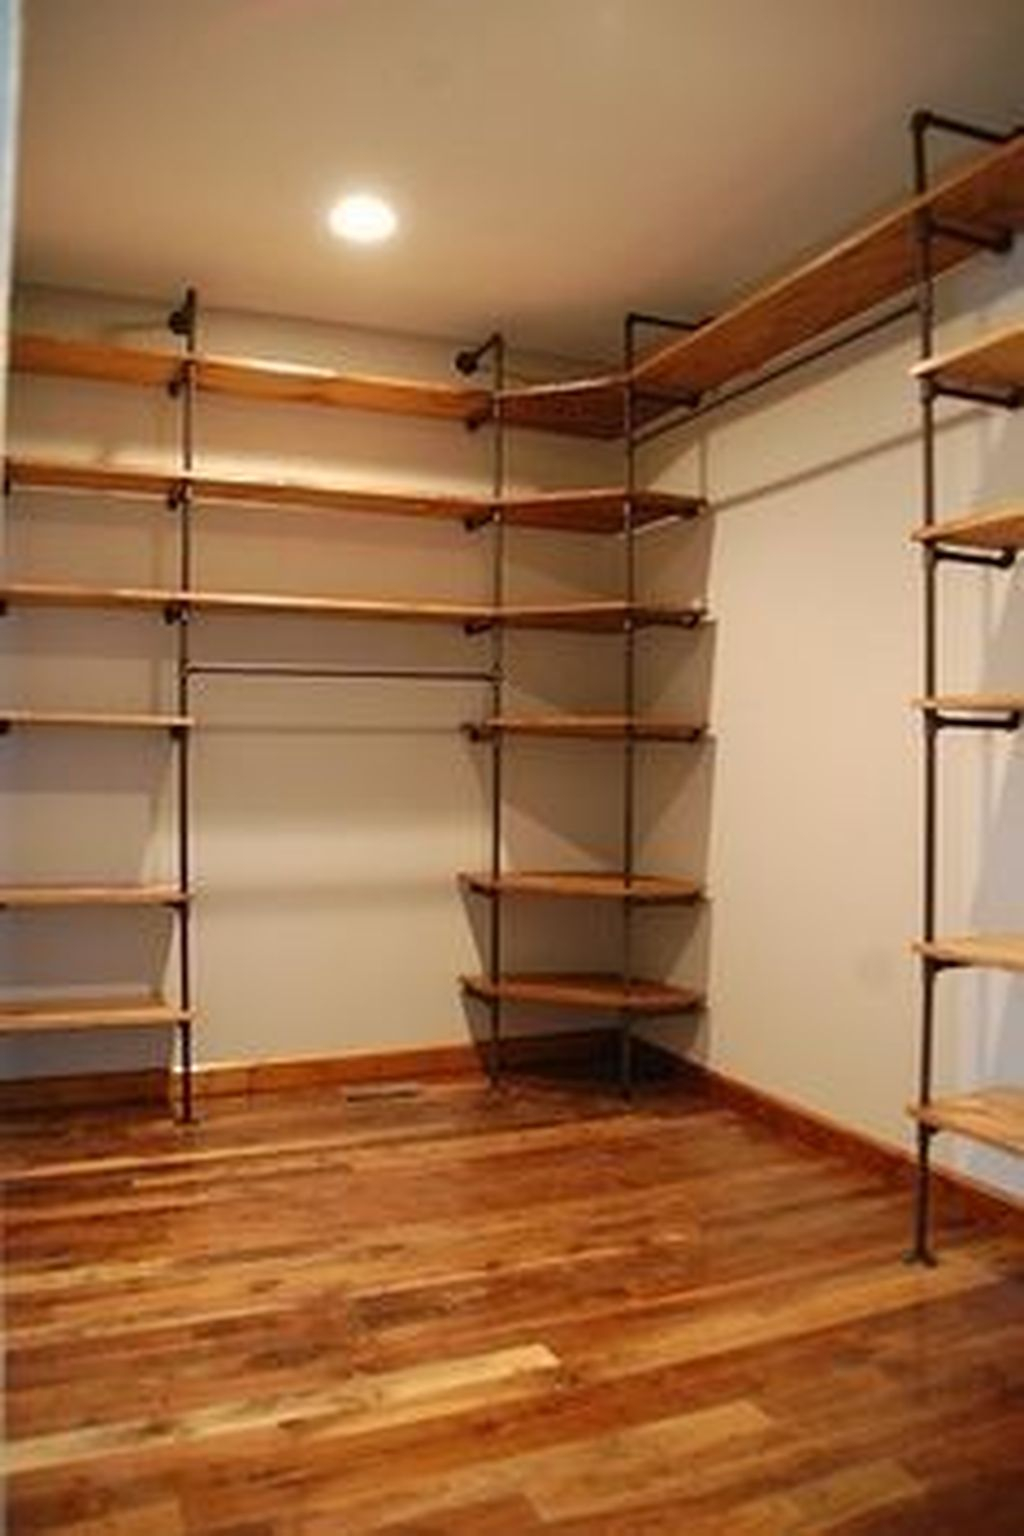 Splendid Wardrobe Design Ideas That You Can Try Current 08